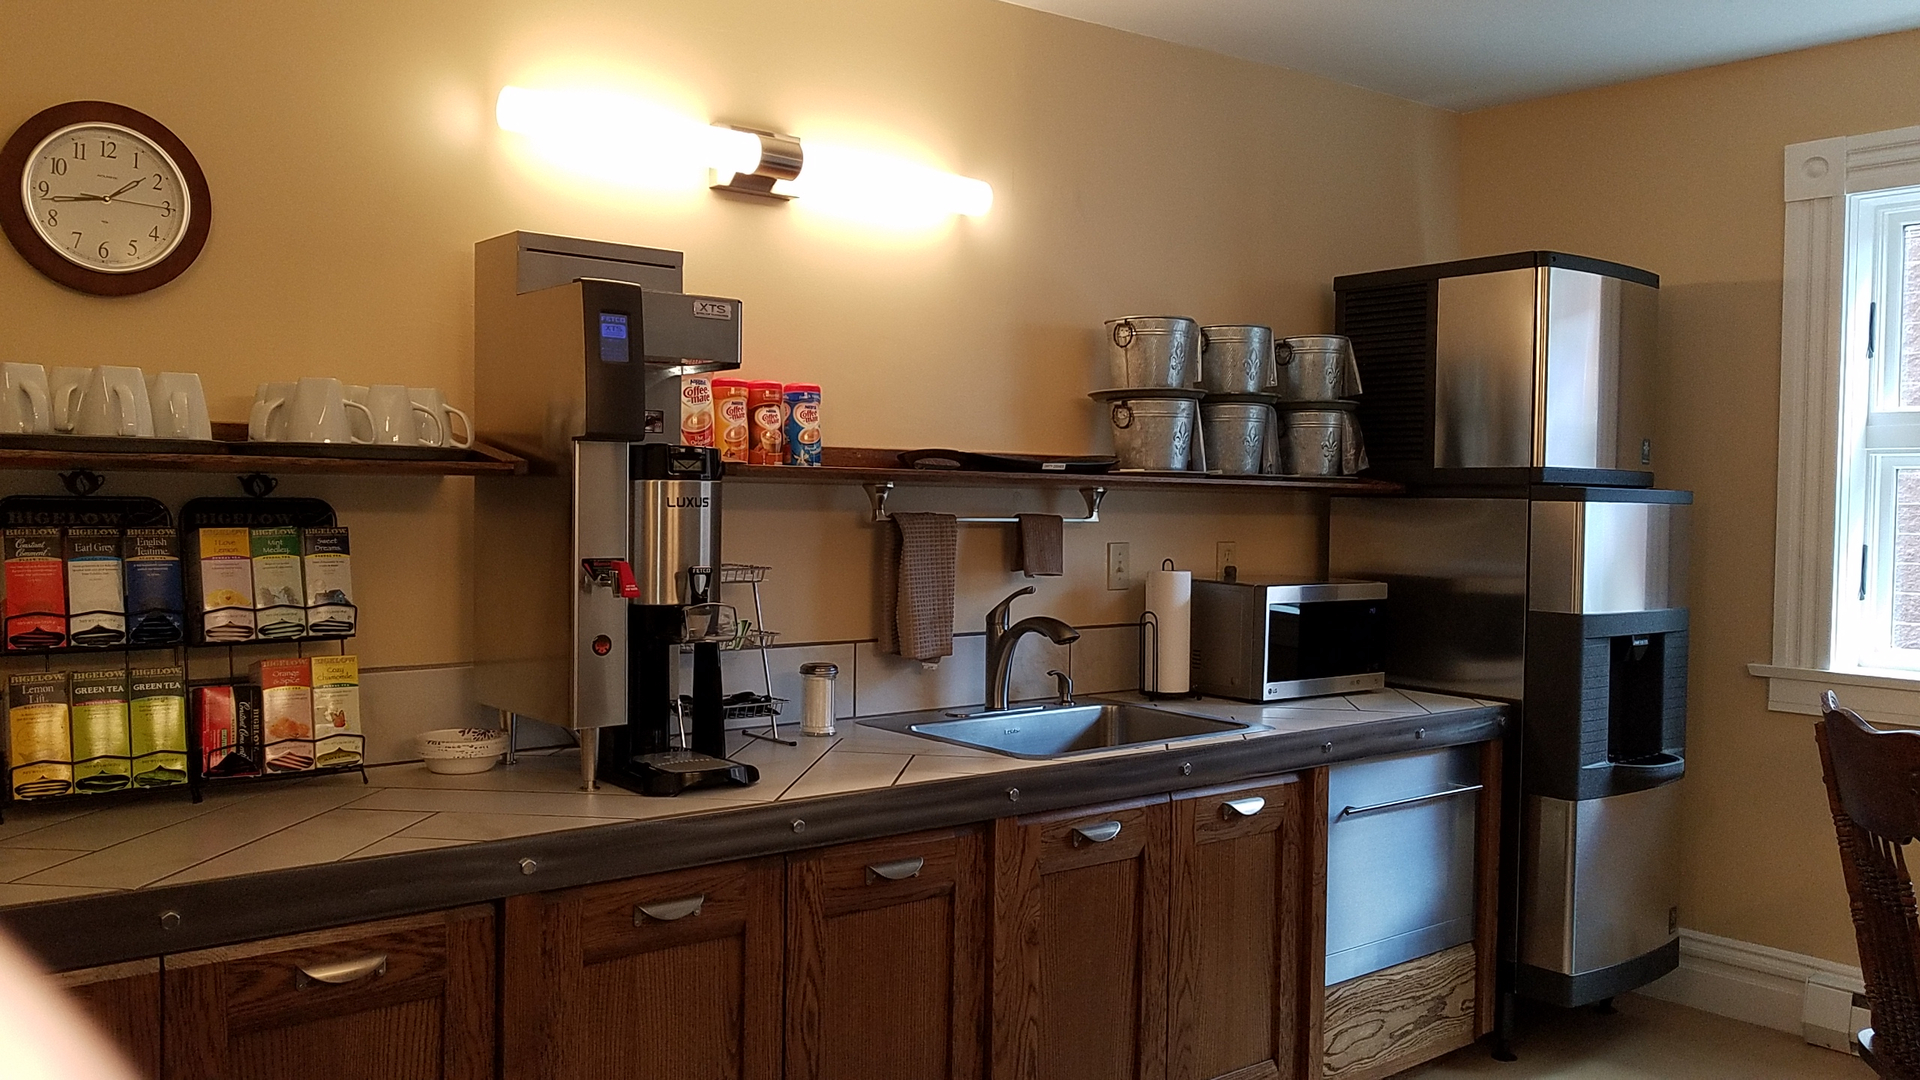 in king extended hotels with robert z s hotel handicap kitchen loft missouri stay st